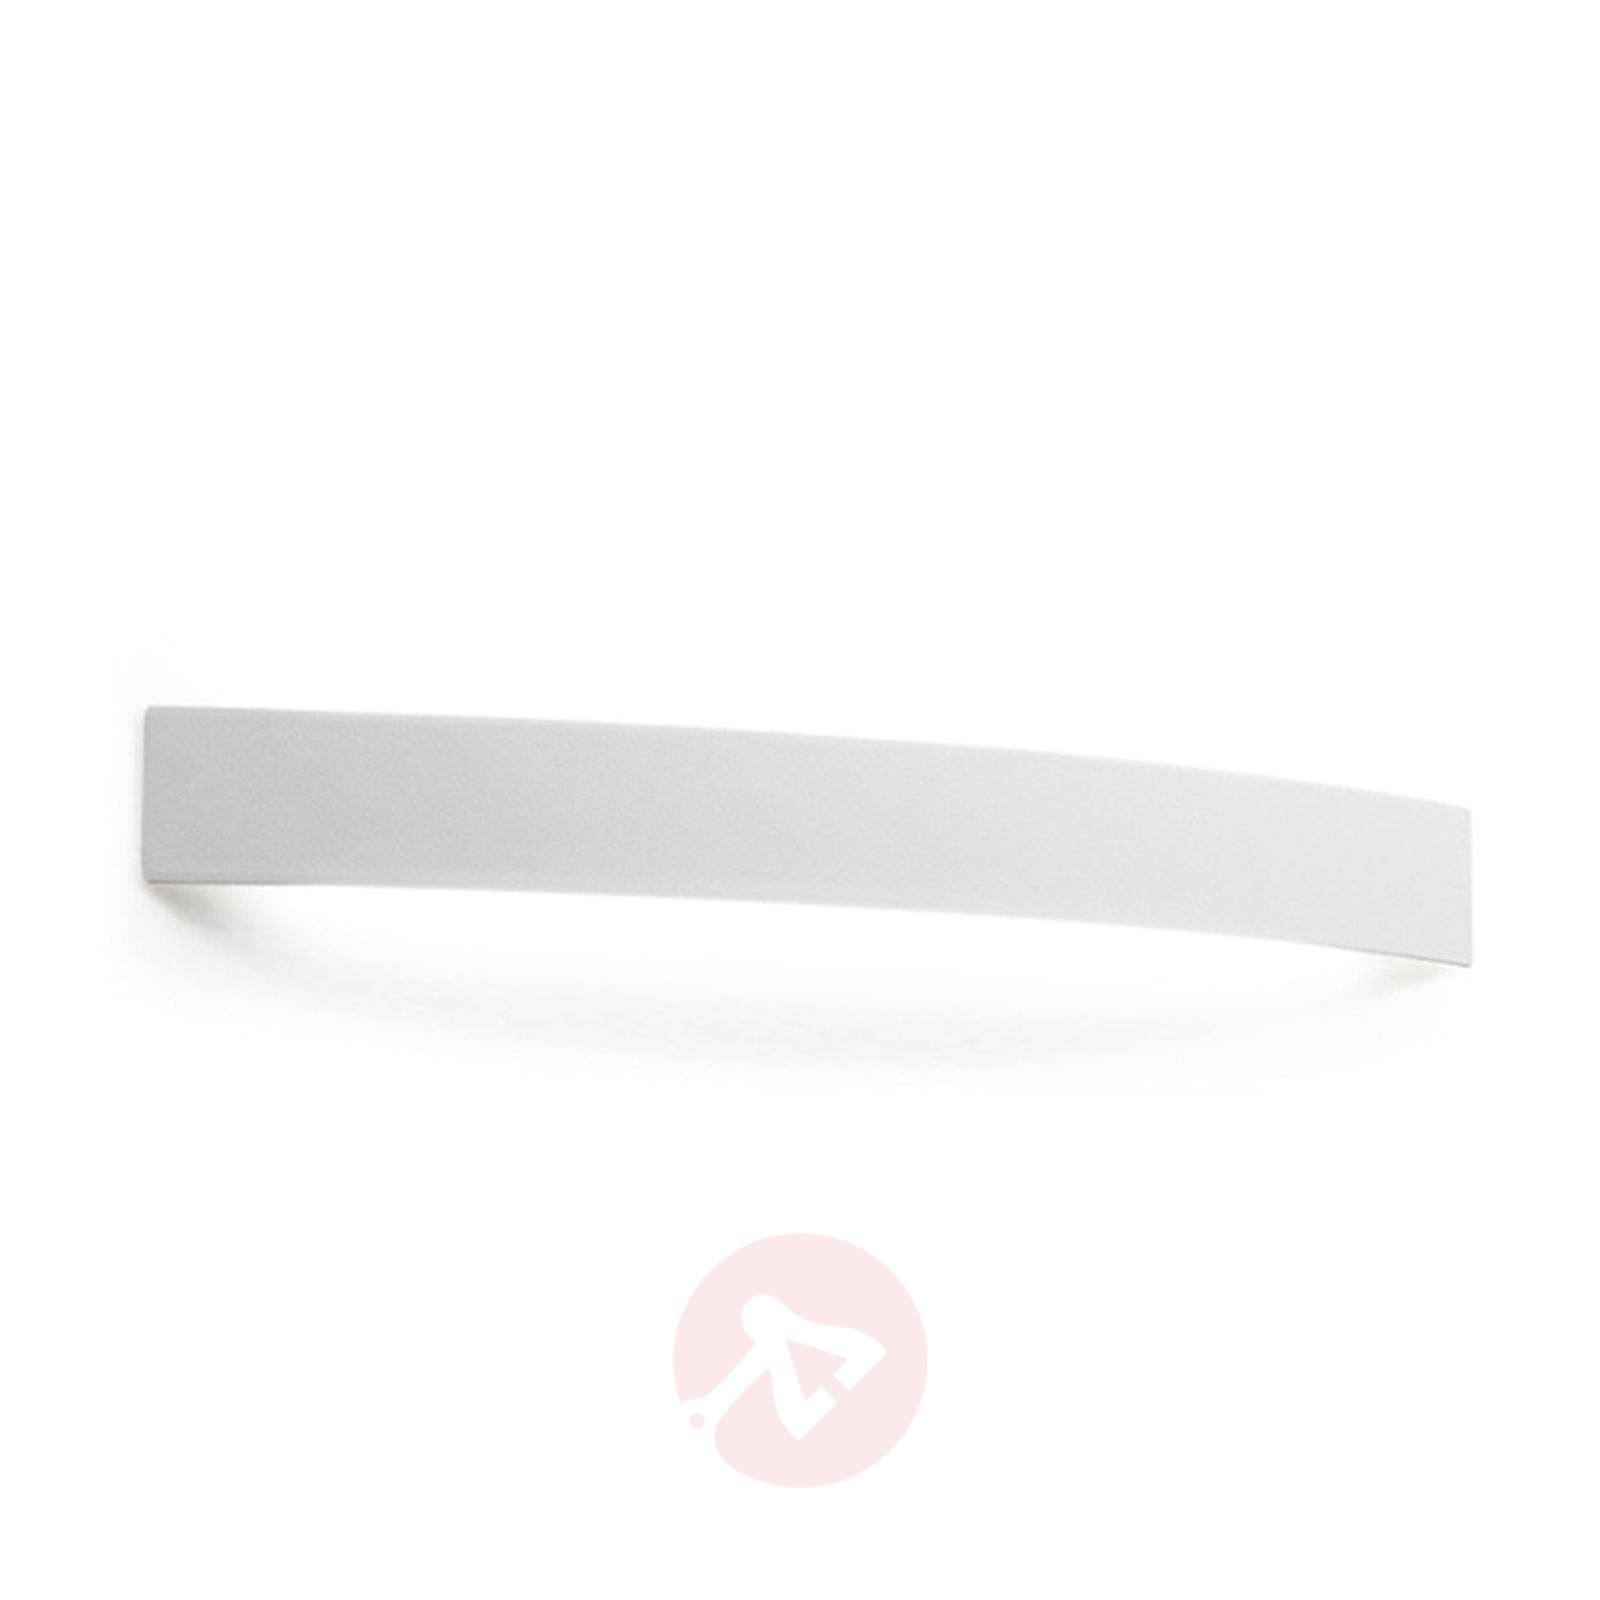 Curved Curve LED wall light in white-6042236-01